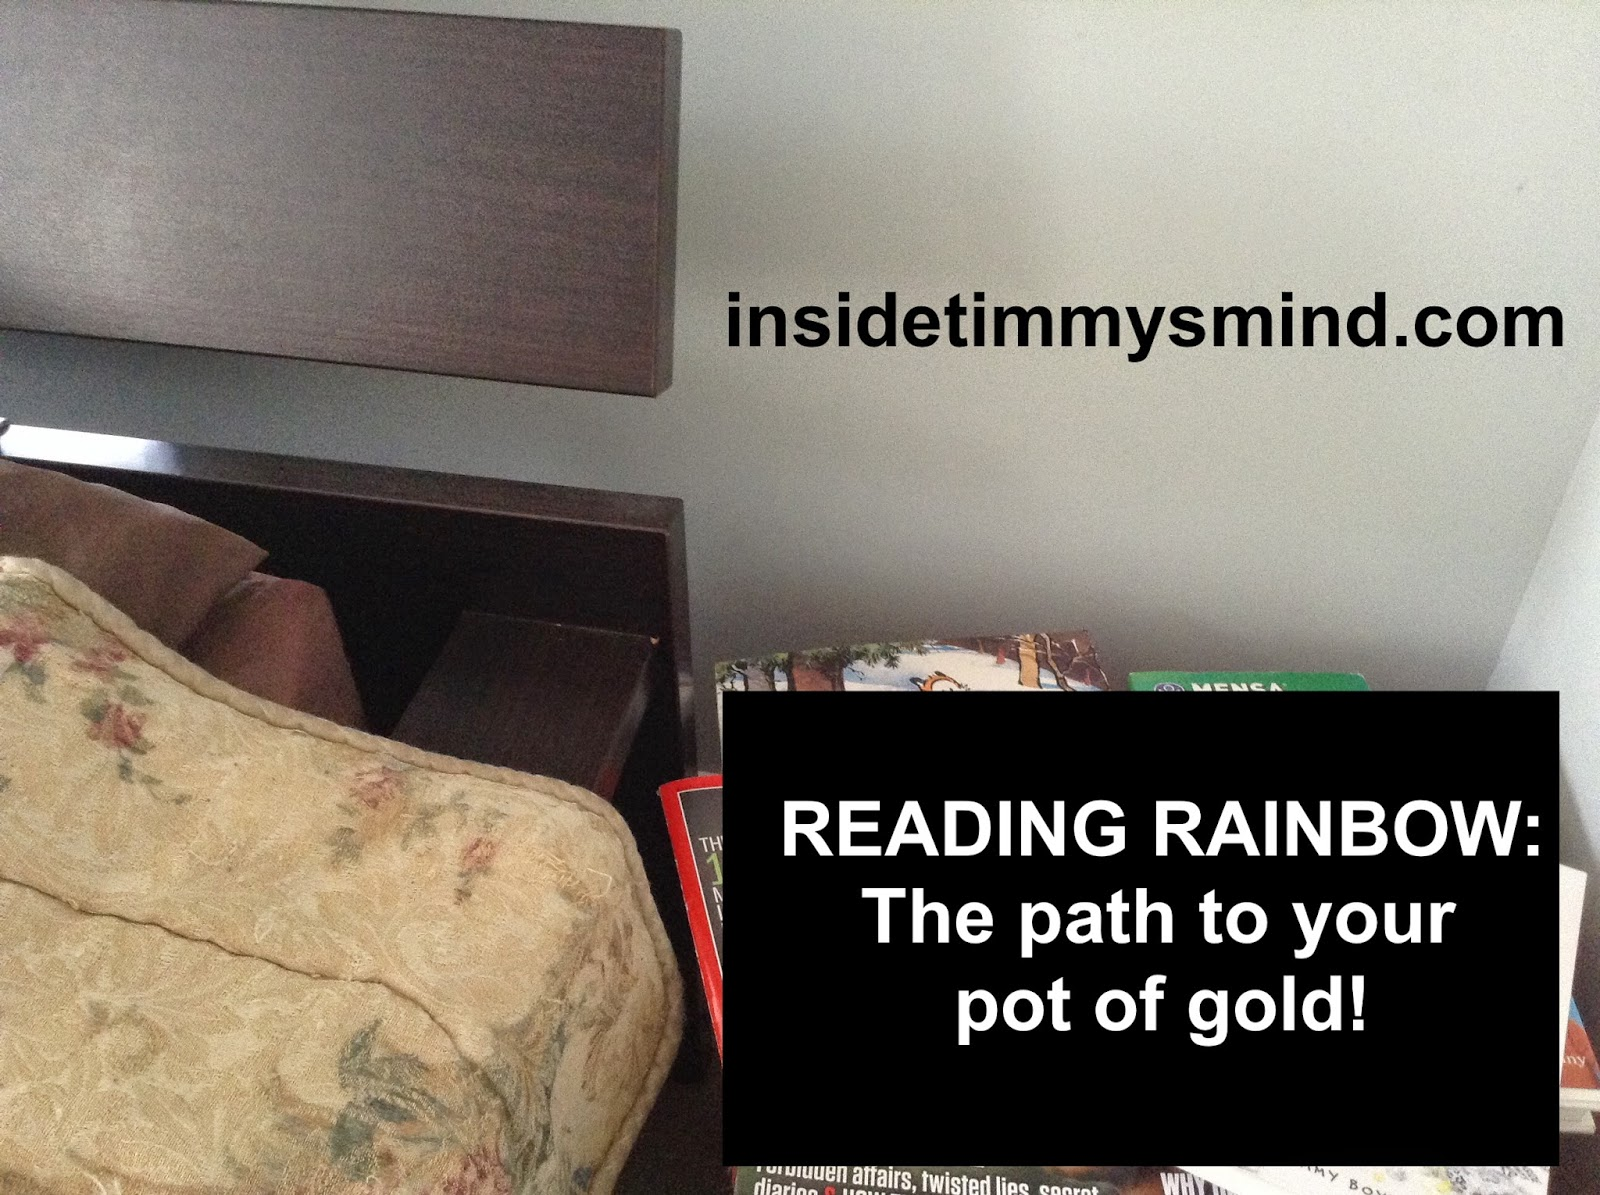 insidetimmysmind.com - Reading Rainbow: The Path to your Pot of Gold